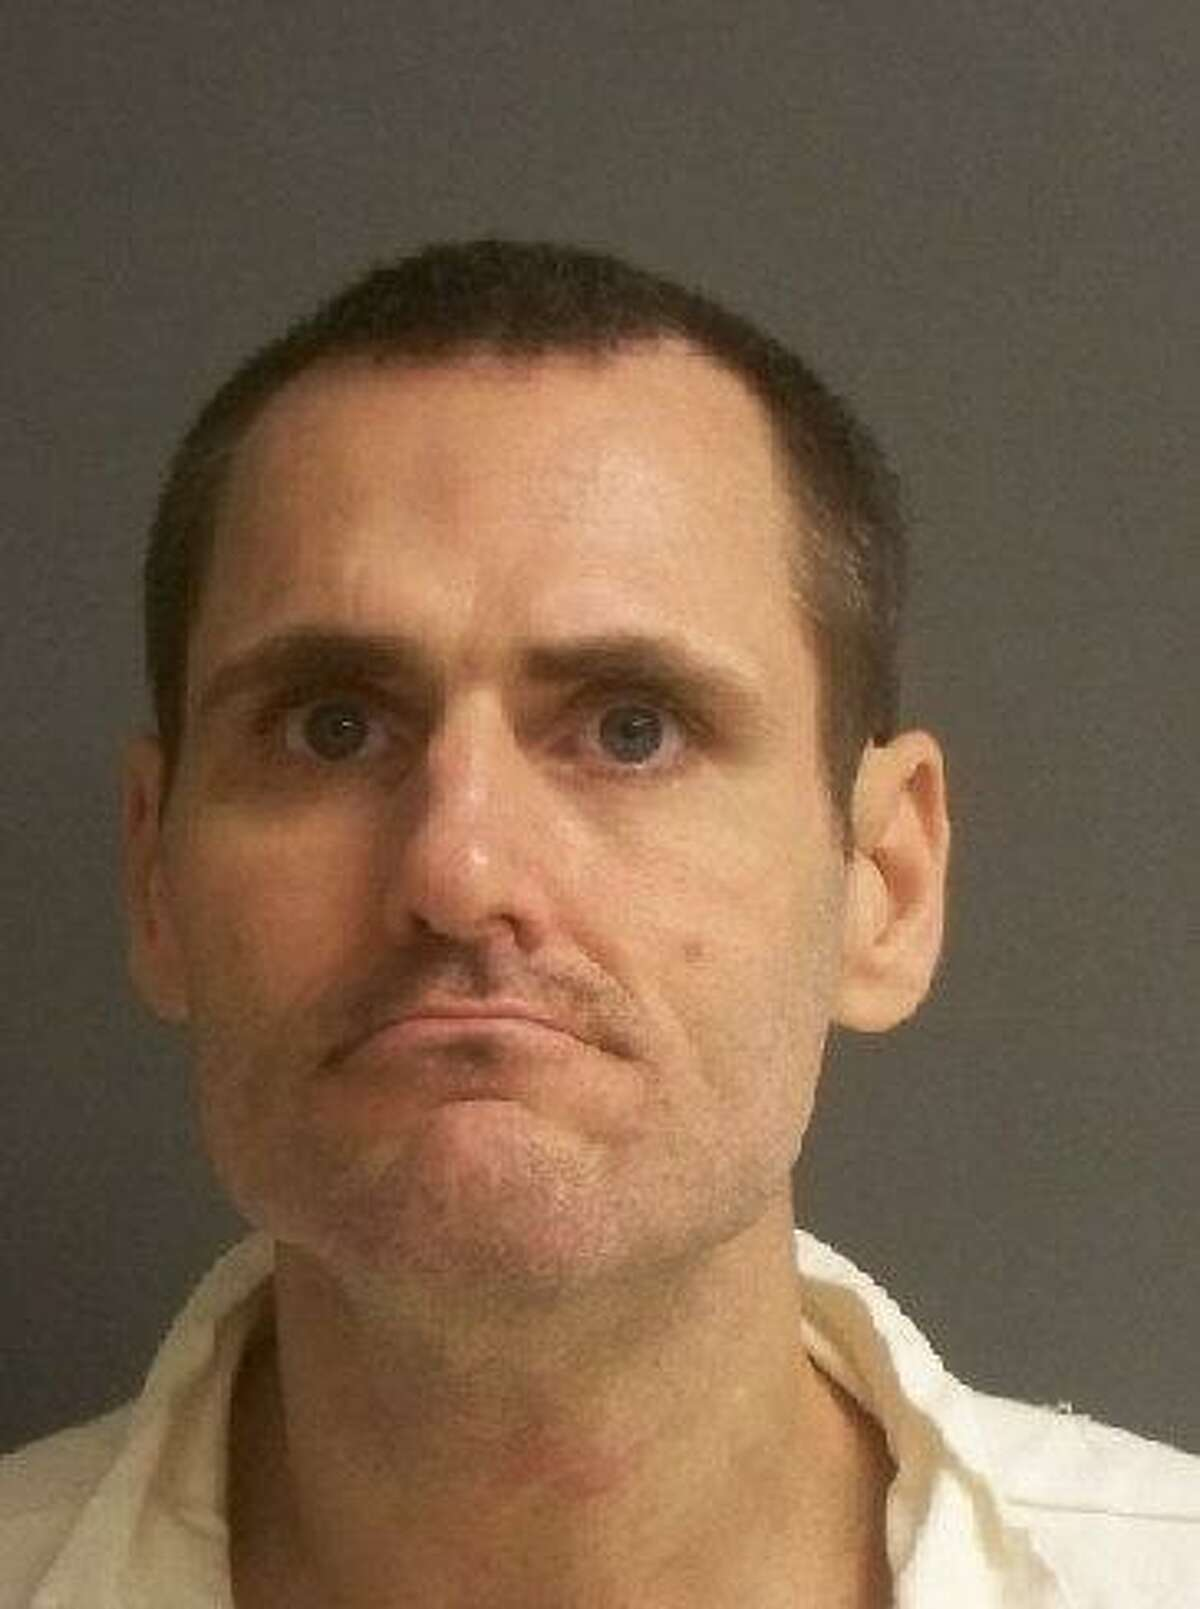 David Witt was killed in a Rosharon prison in August 2017. A Texas prison sergeant is set to go to trial in September 2019 on aggravated assault charges.